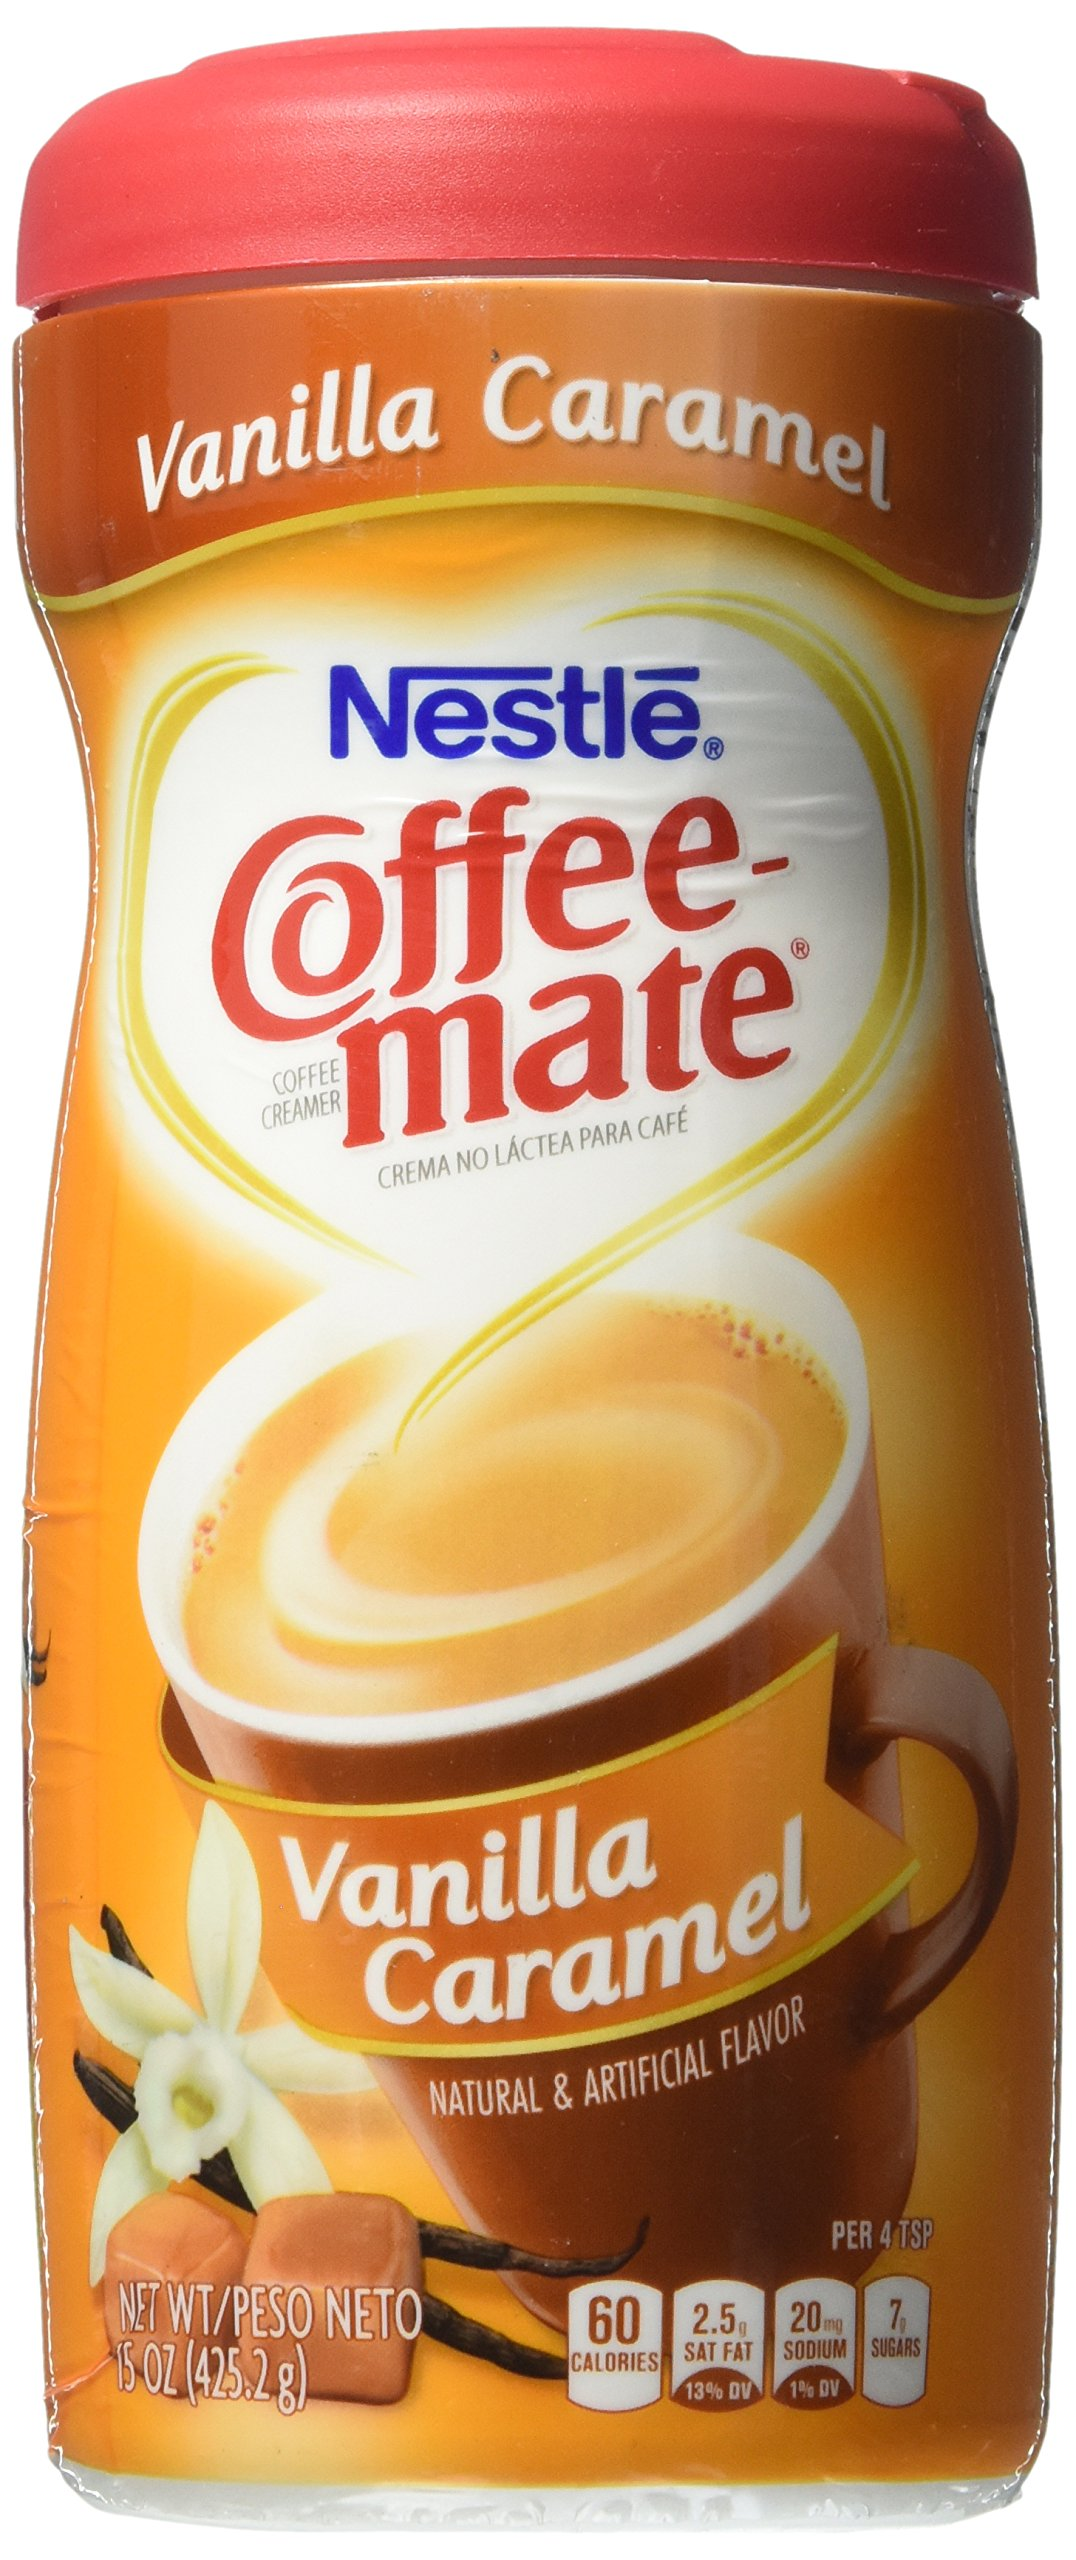 Coffee-mate Powdered Coffee Creamer - Vanilla Caramel - 15 oz by Coffee-mate